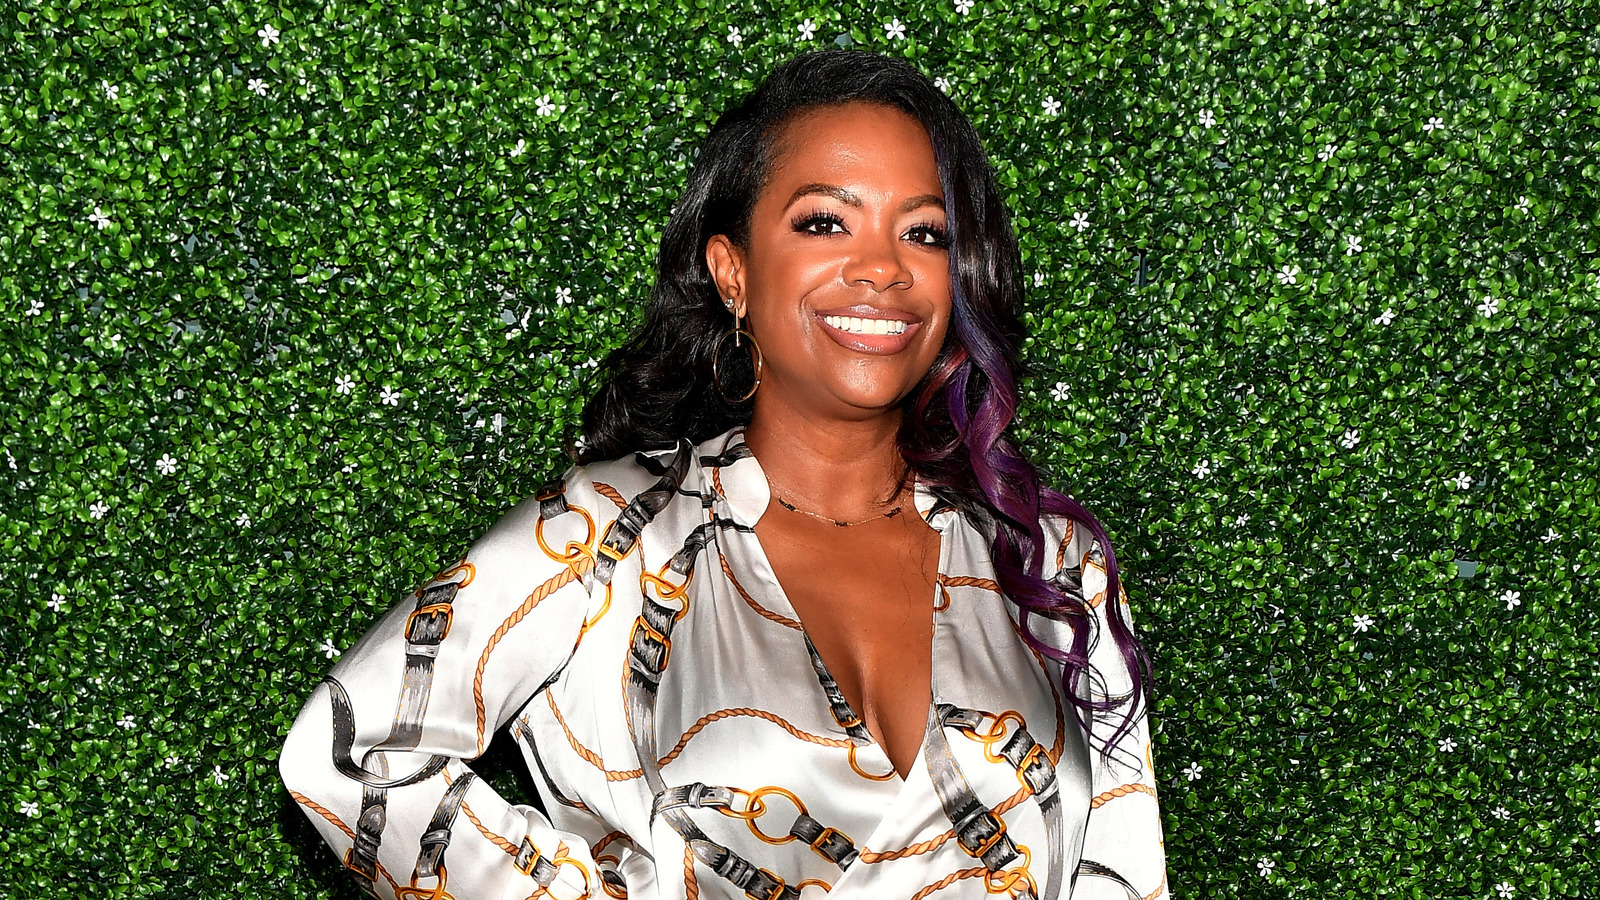 Kandi Burruss Shares An Exciting Post About The Masked Singer